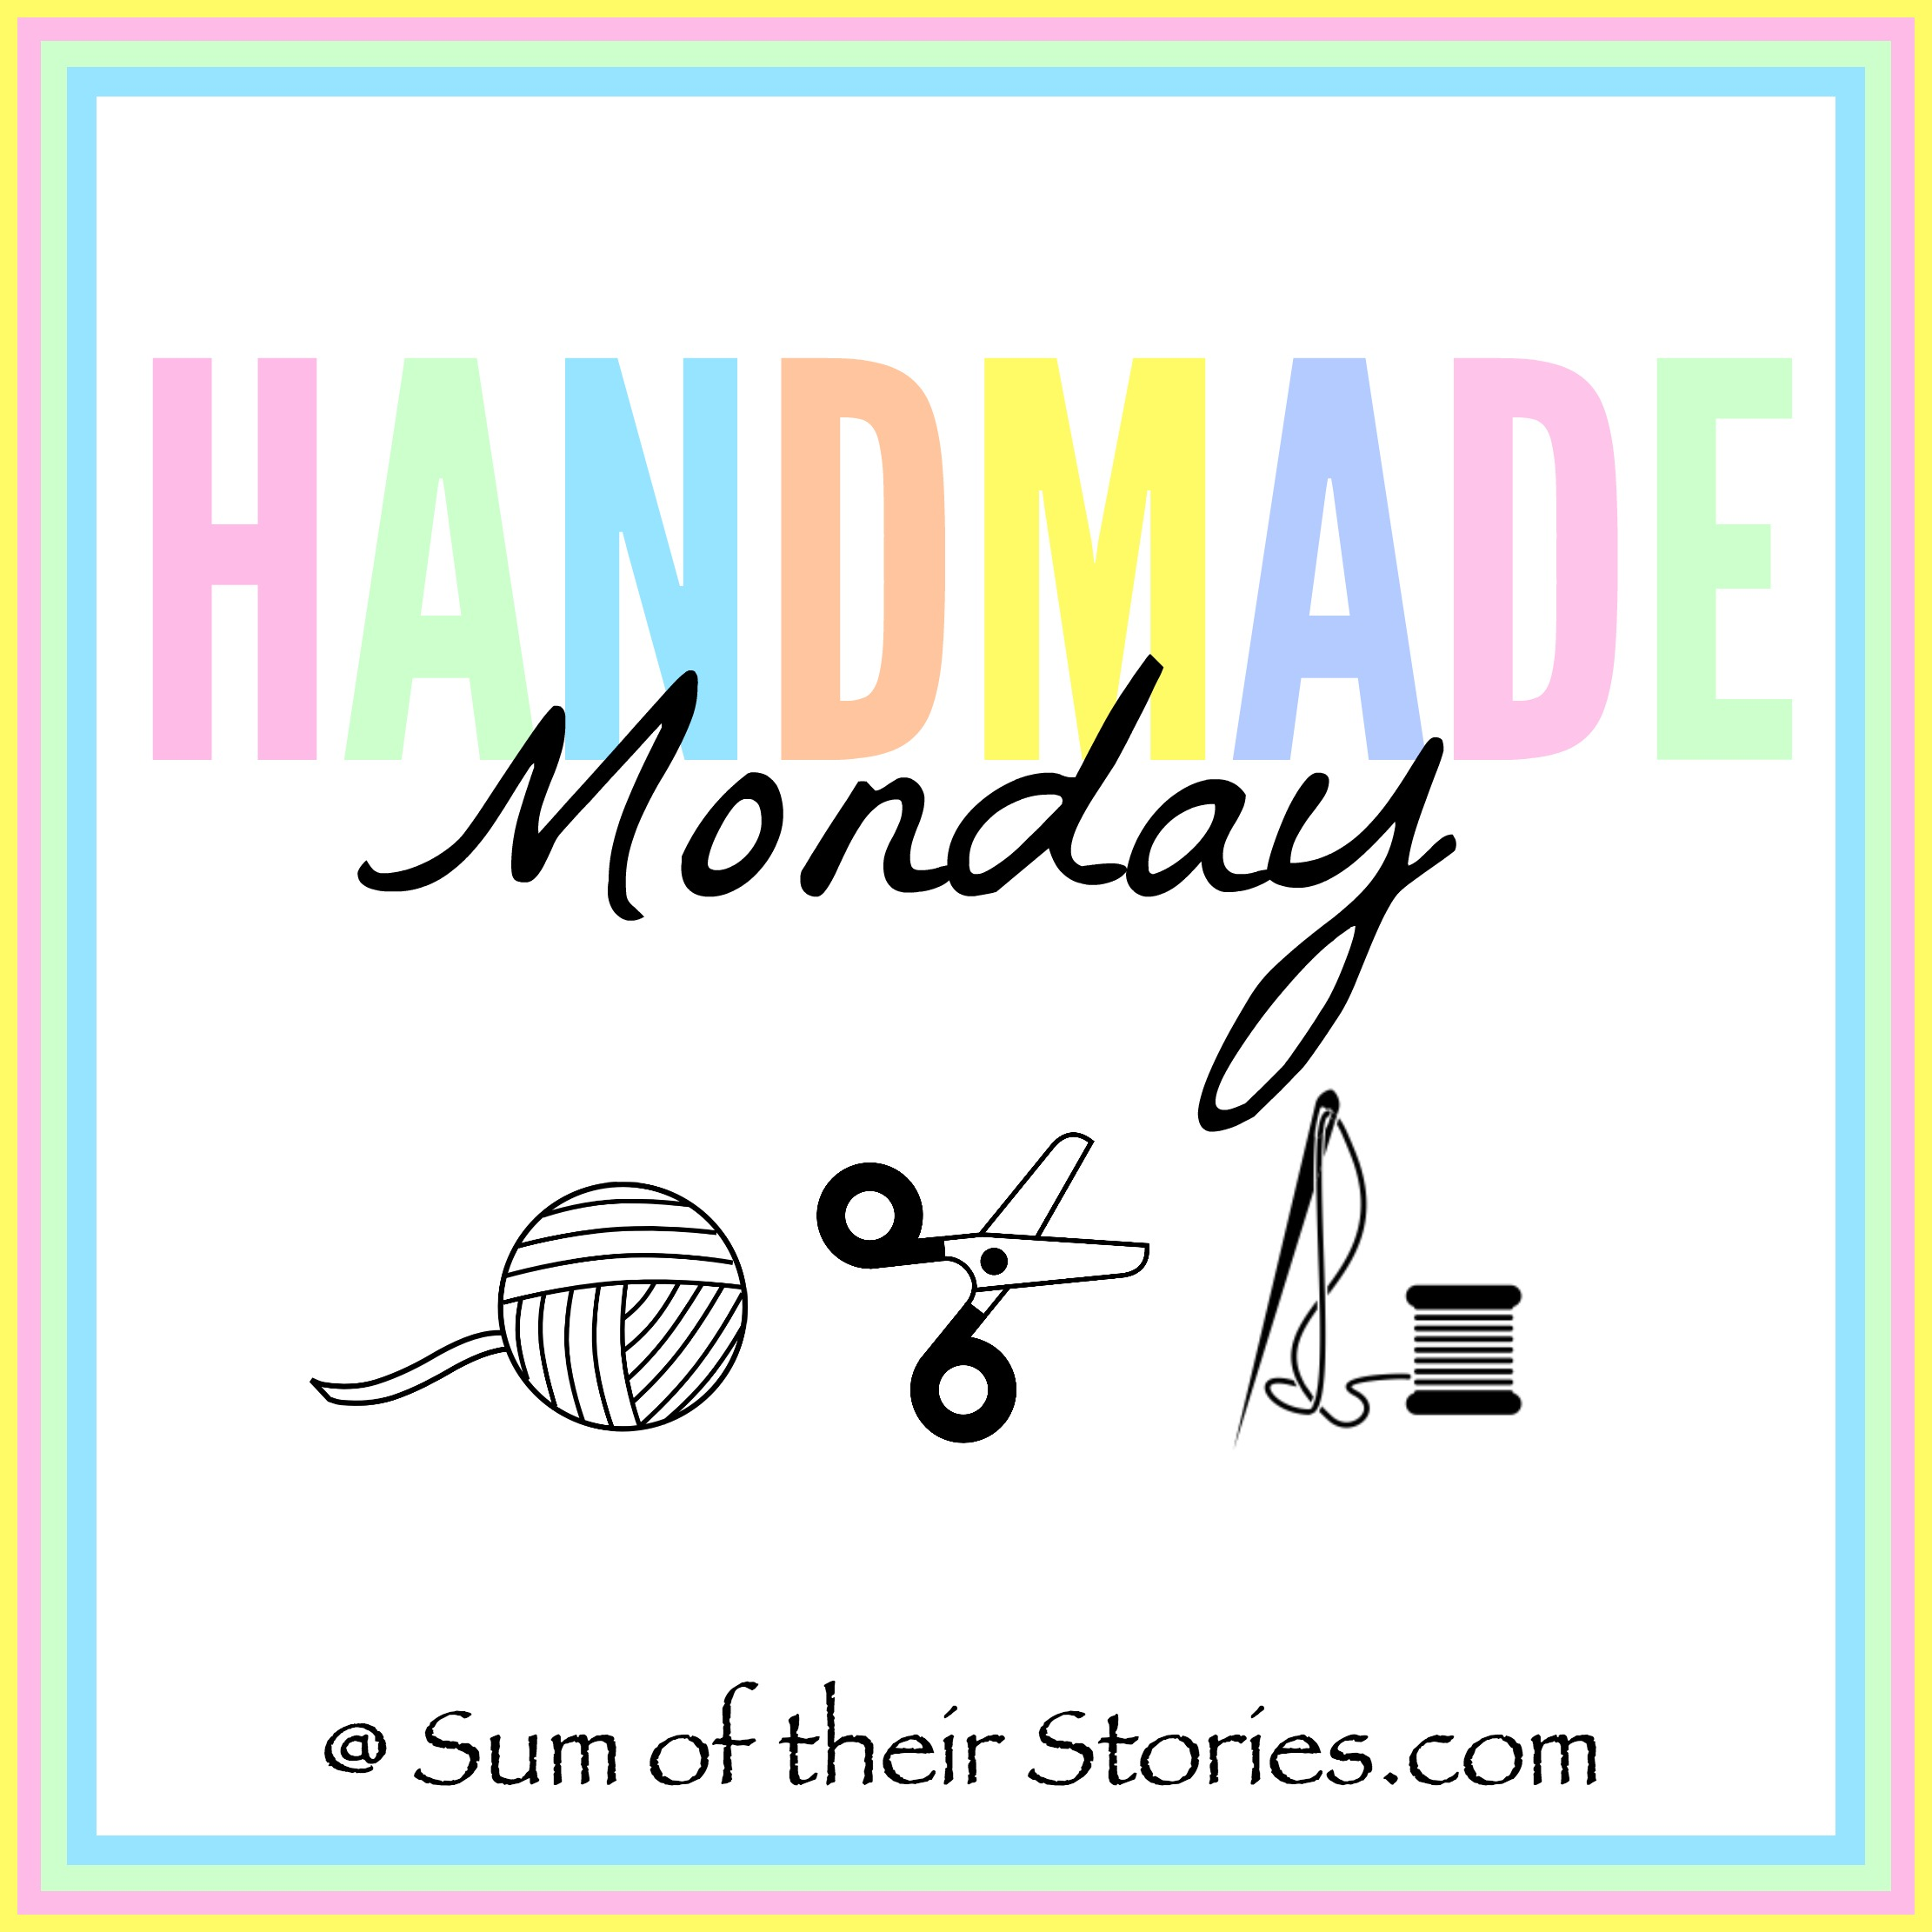 Handmade Monday craft link up